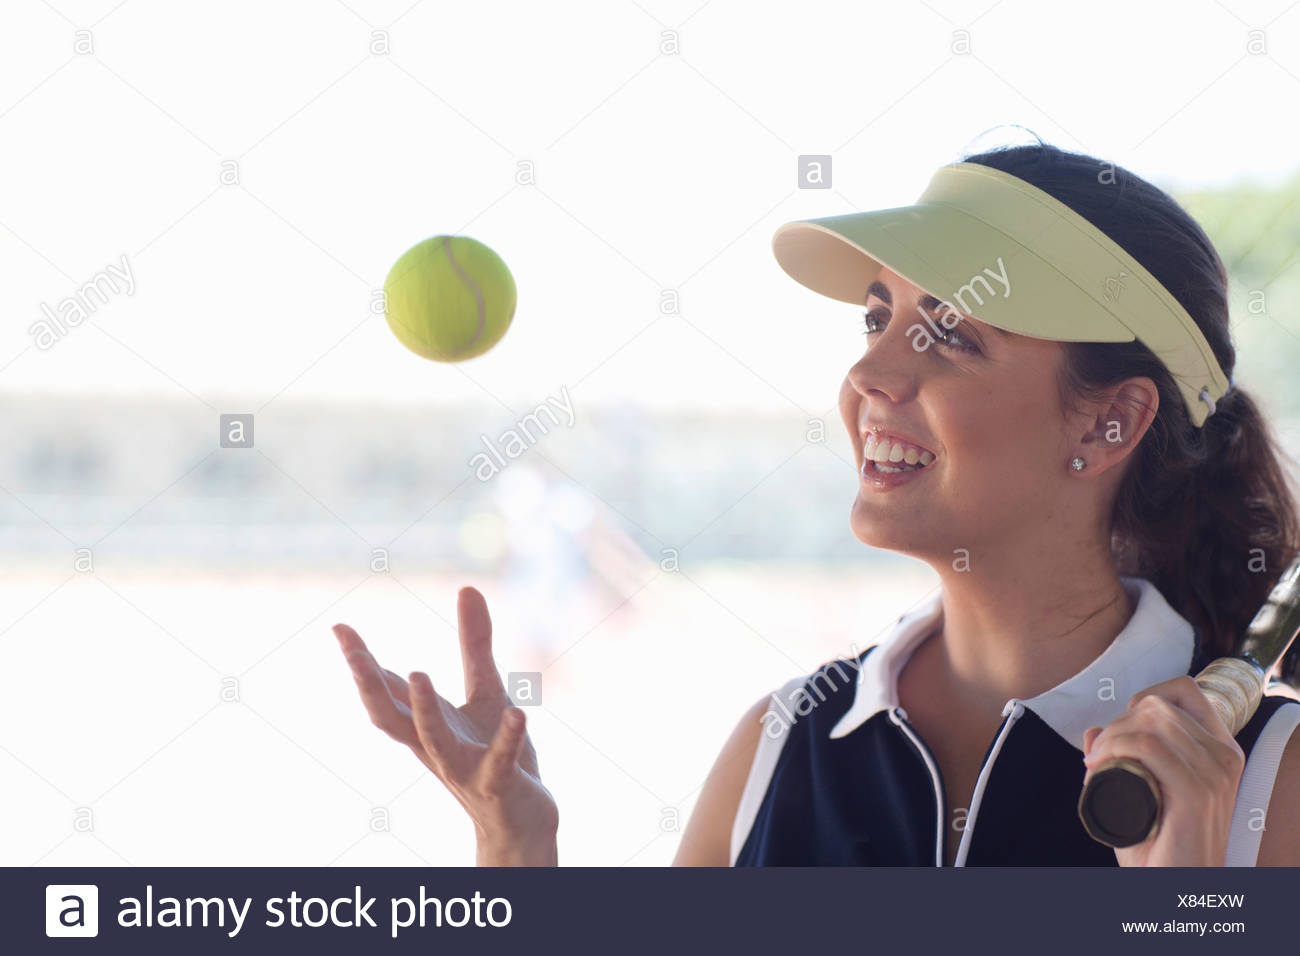 Joueur de tennis ball lancer Photo Stock